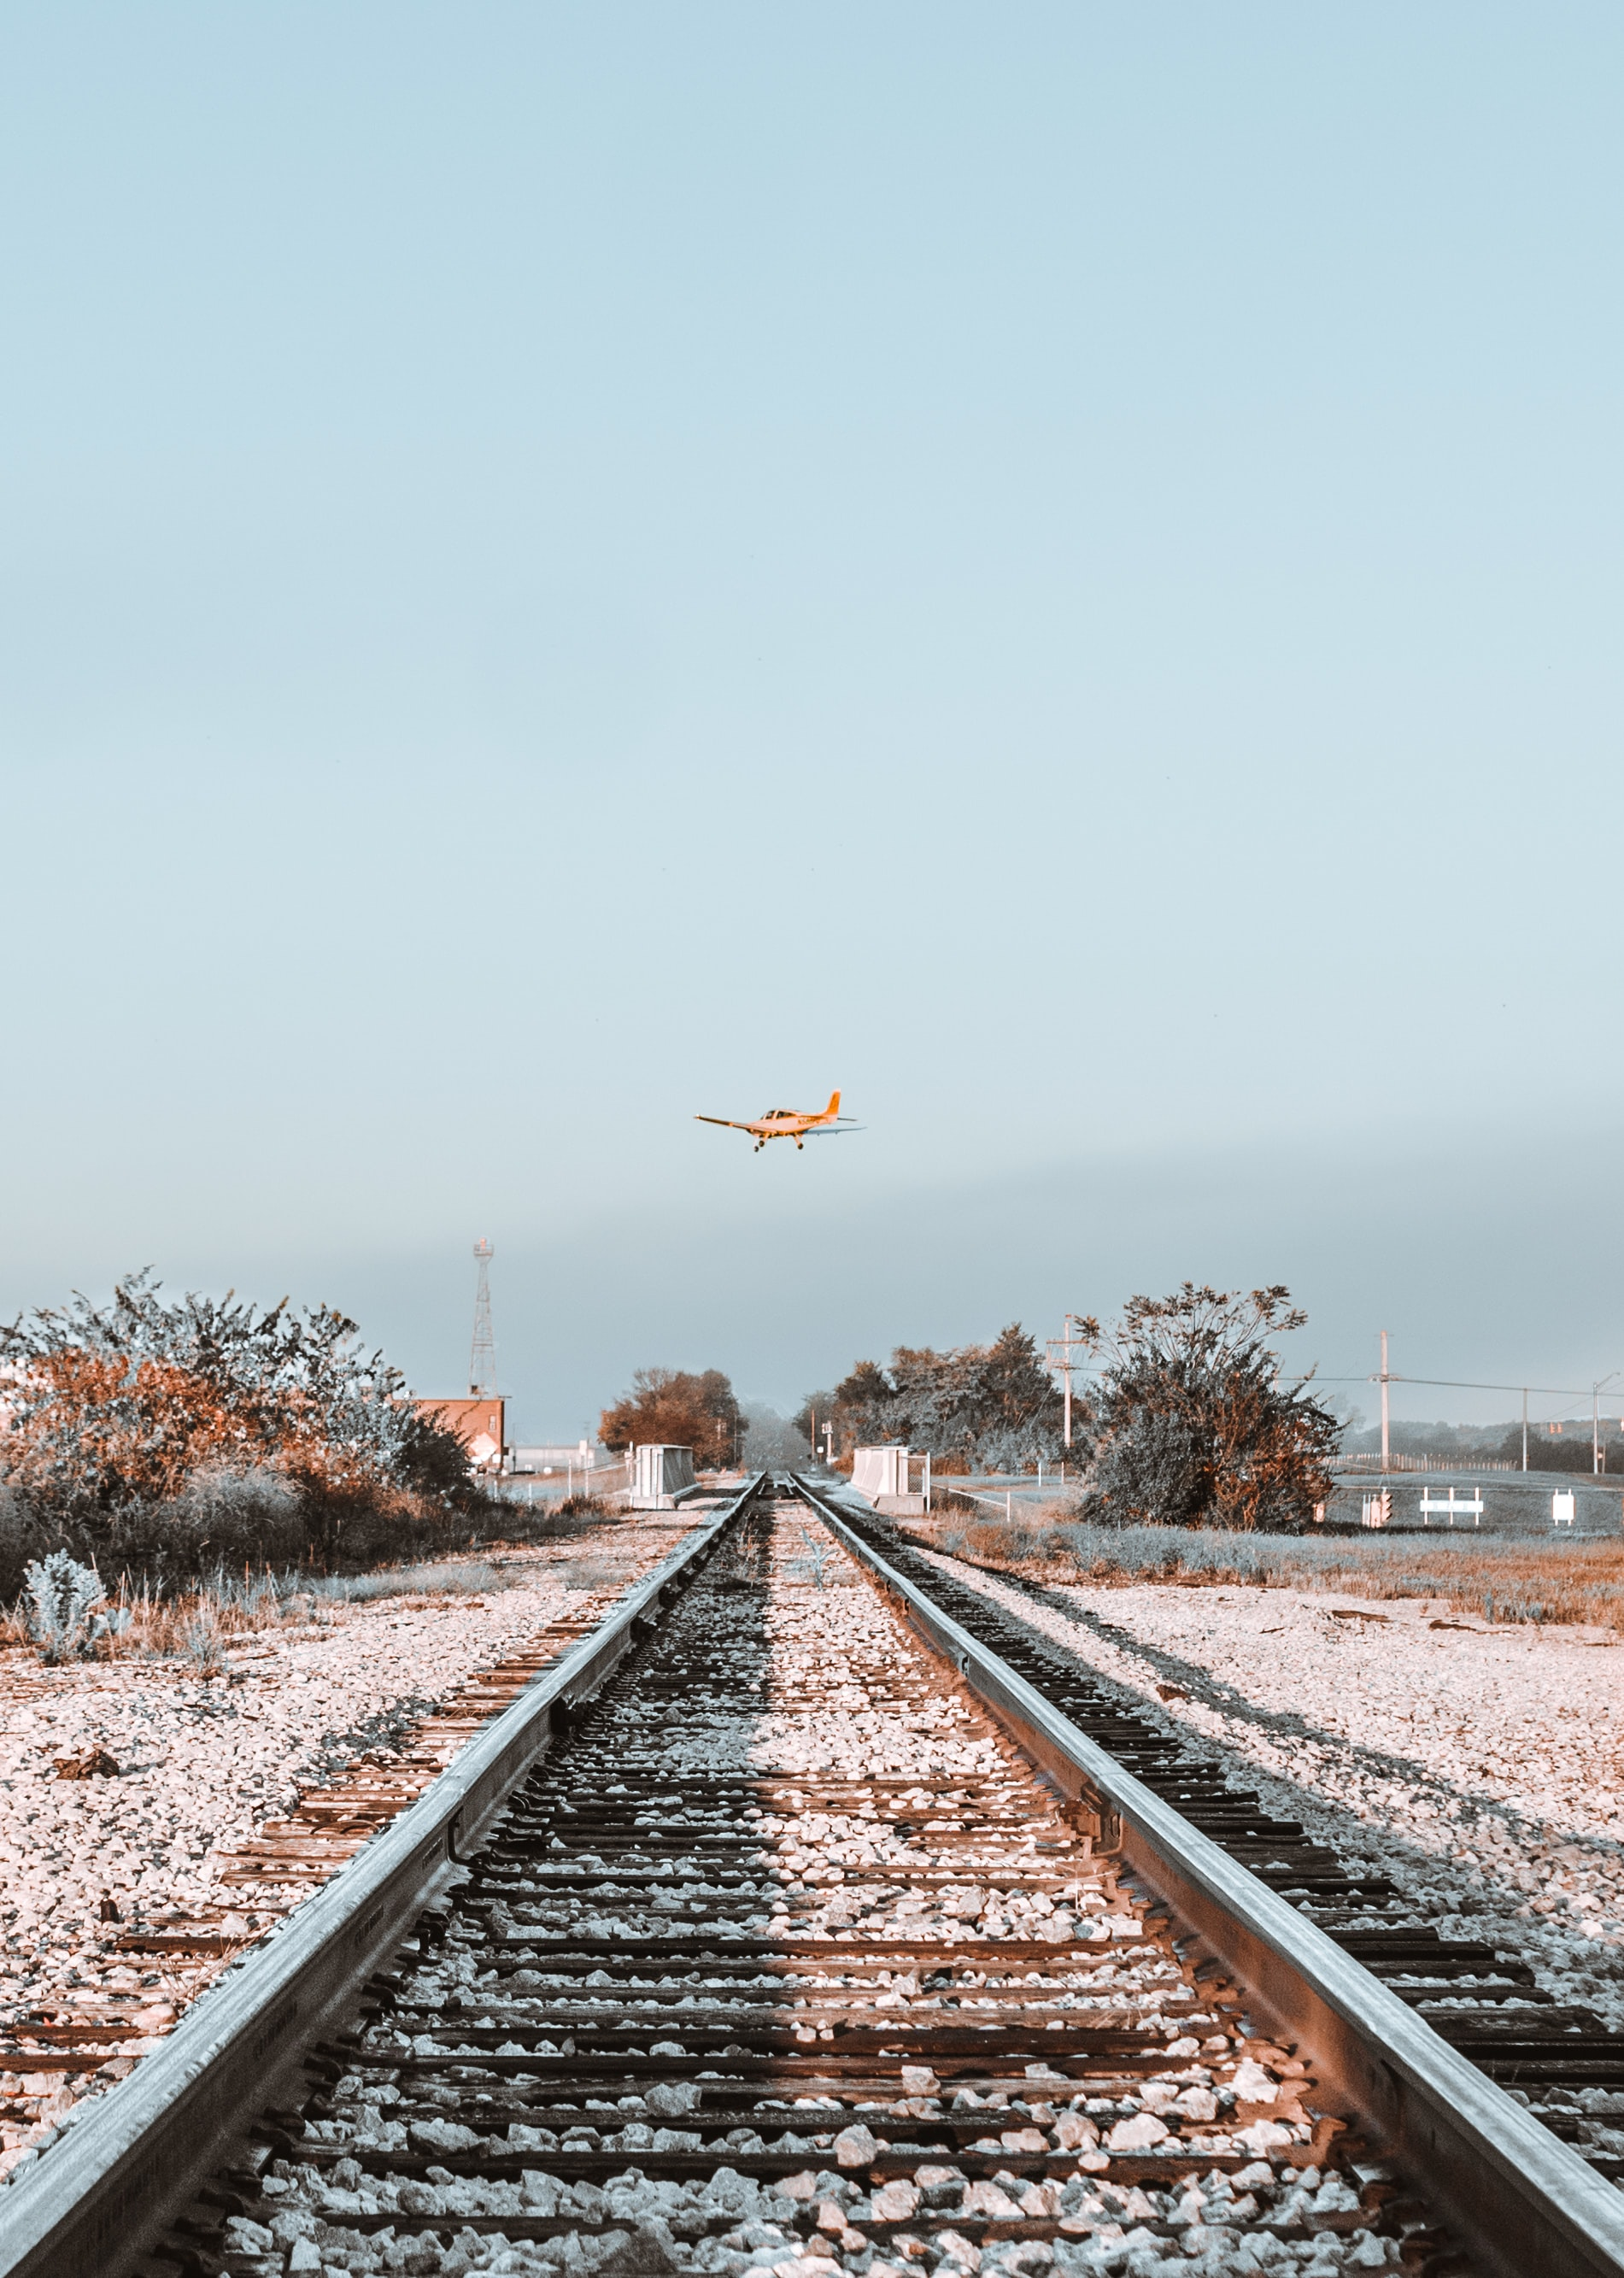 orange monoplane flying above a railroad